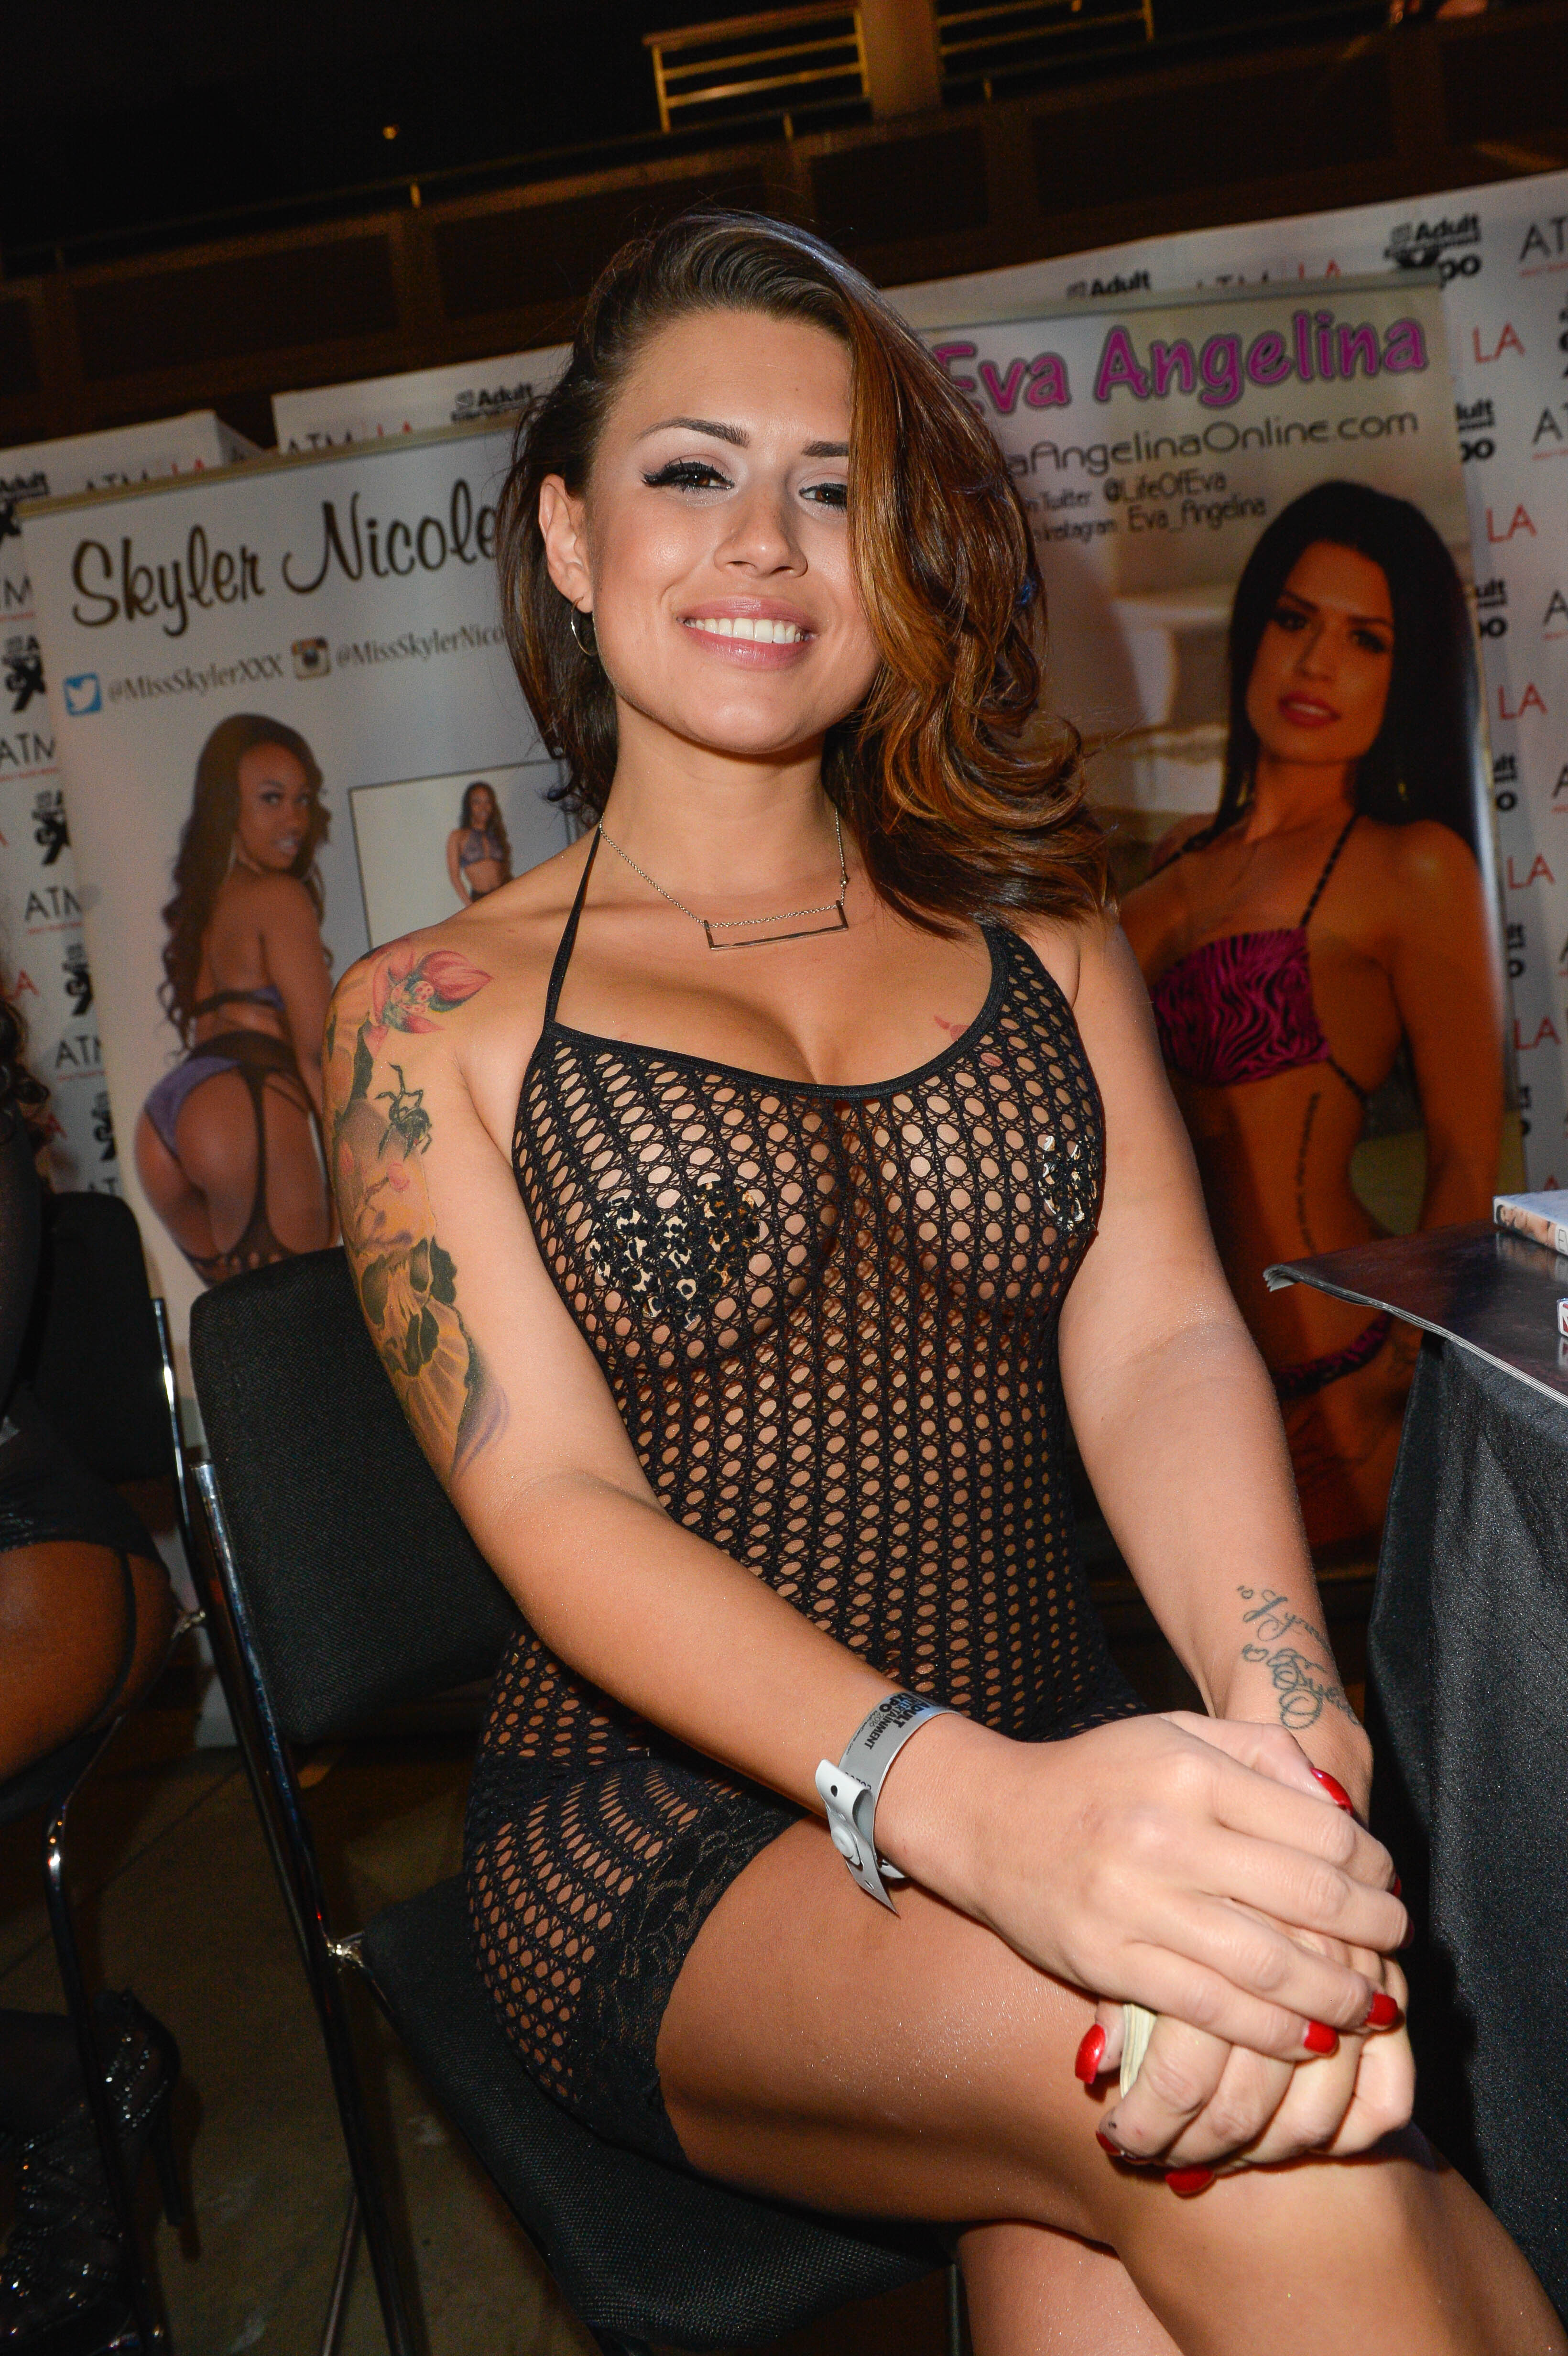 Eva Angelina Wallpapers High Quality Download Free